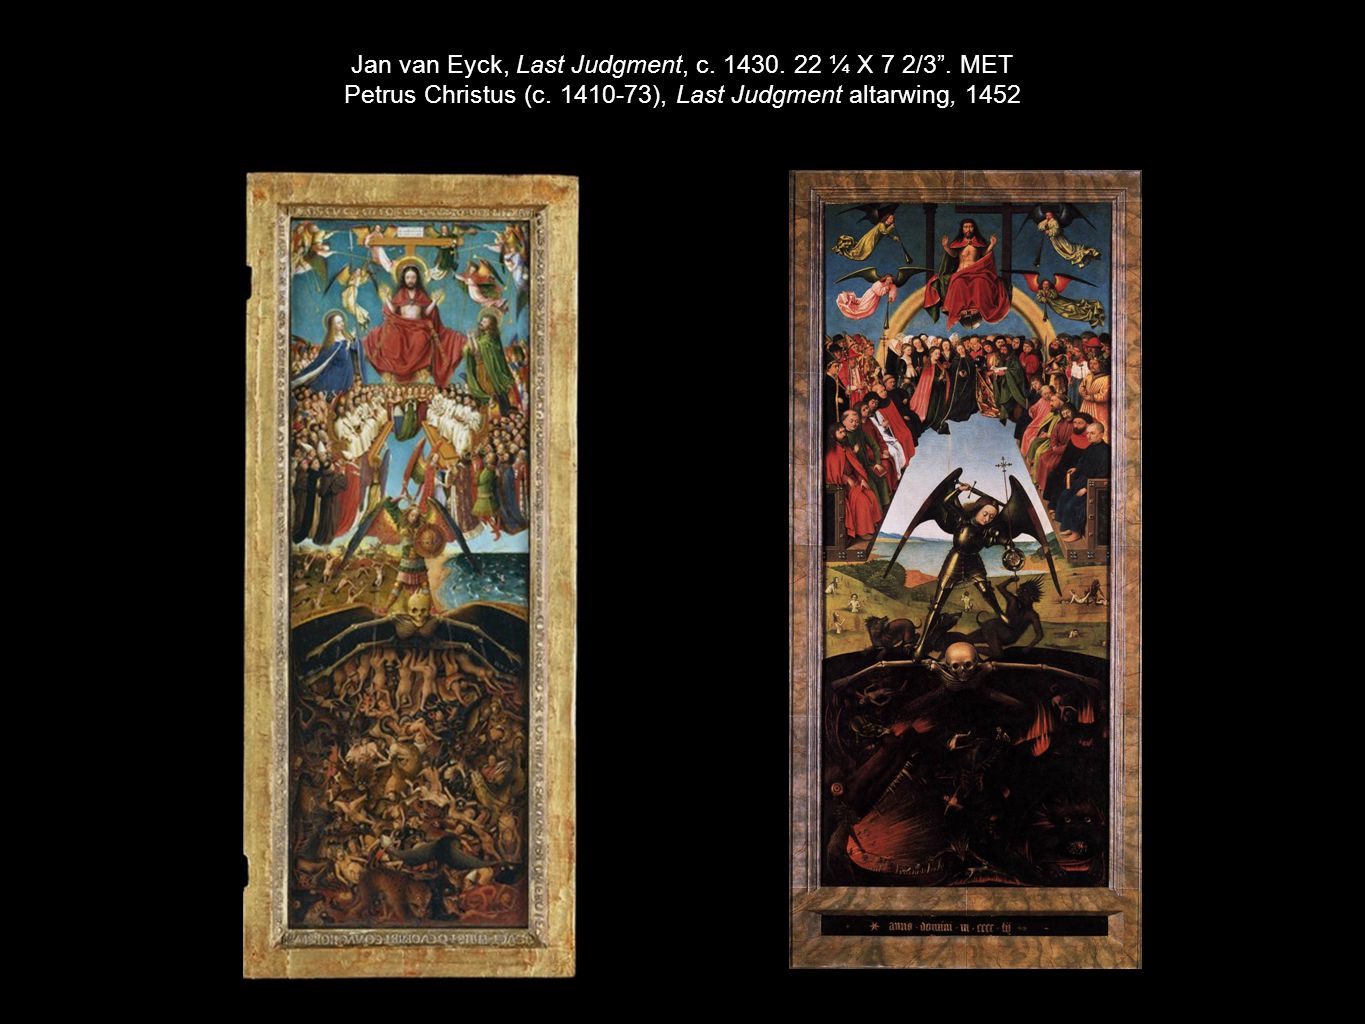 Jan van Eyck, Last Judgment, c. 1430. 22 ¼ X 7 2/3